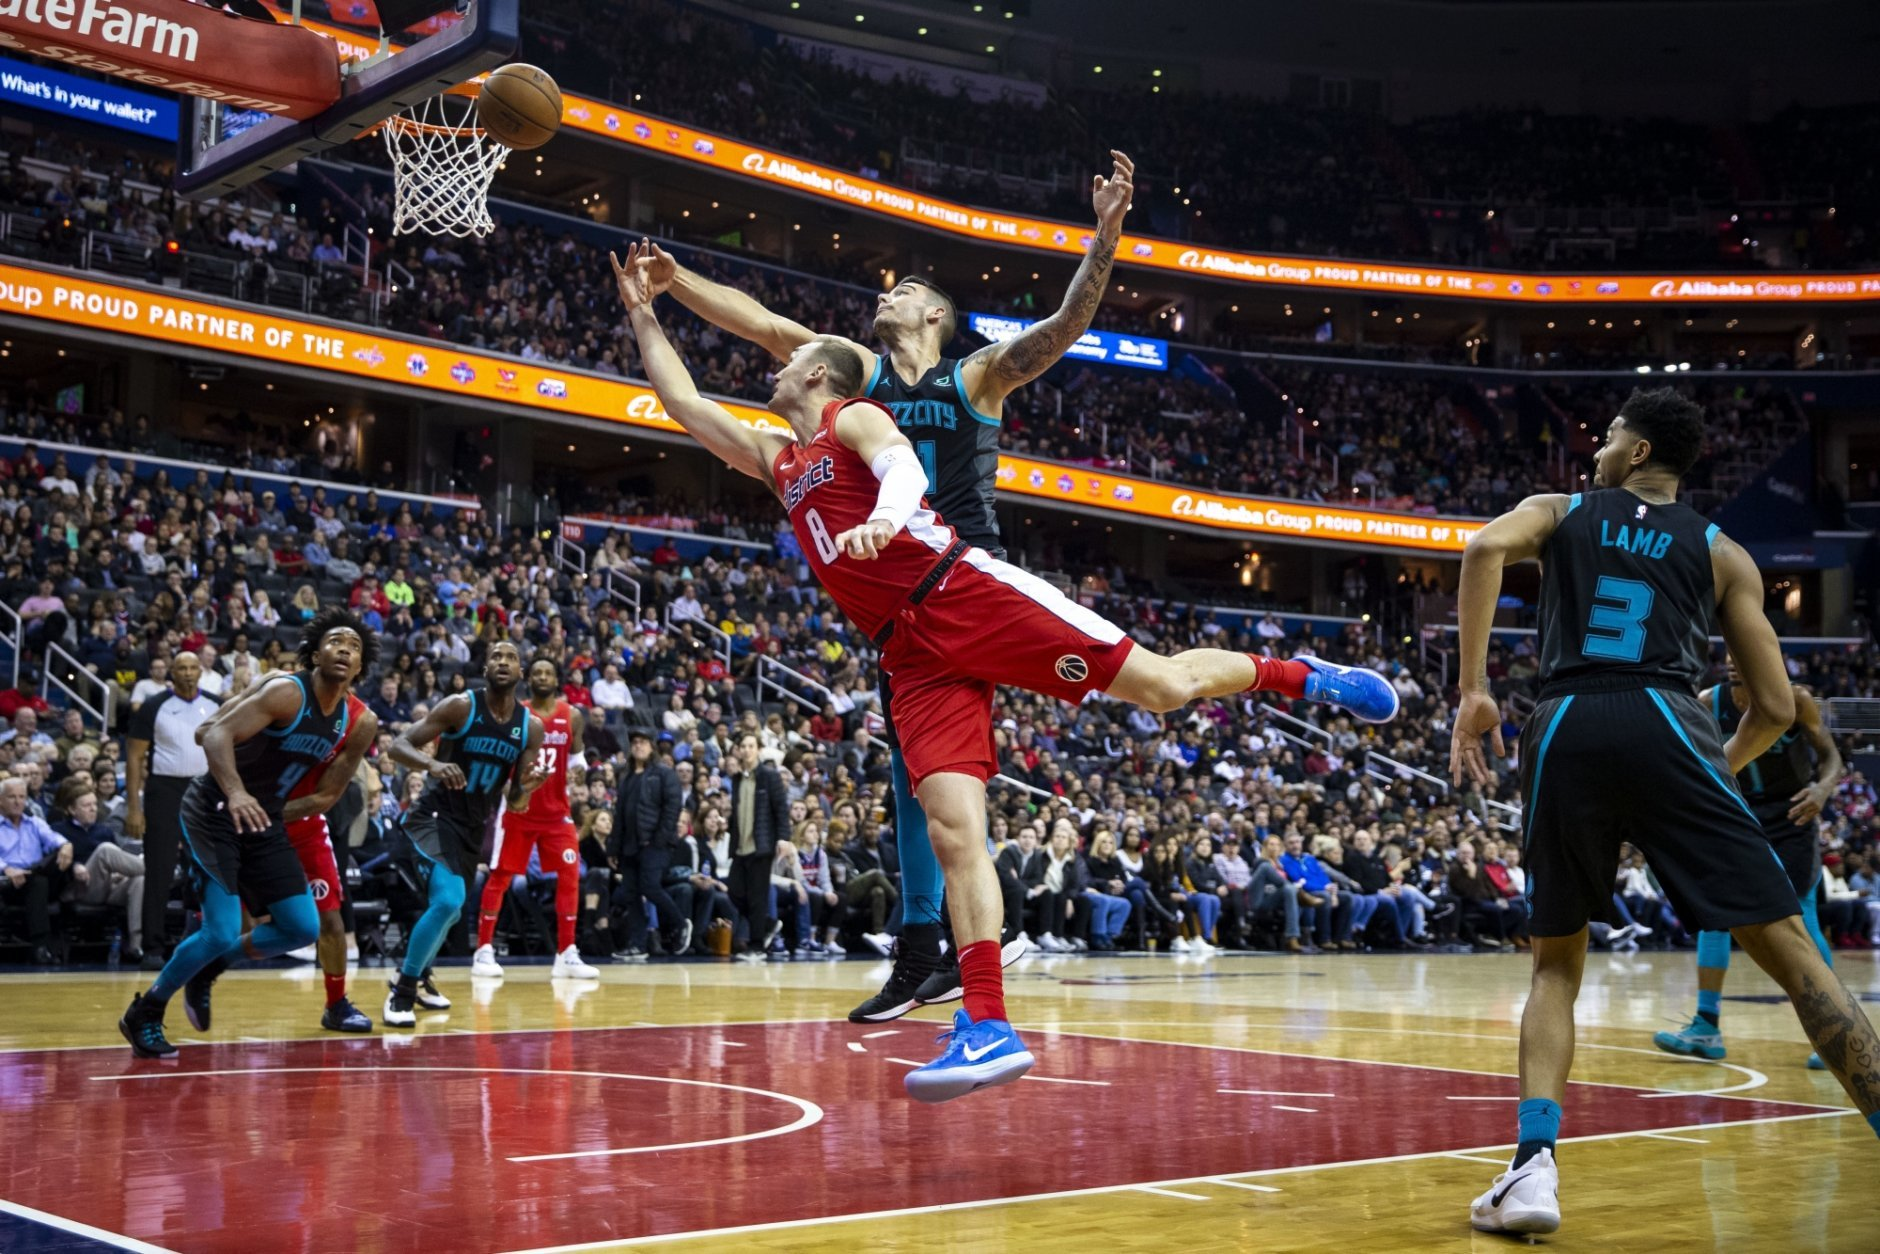 Washington Wizards forward Sam Dekker (8) attempts a layup past Charlotte Hornets center Willy Hernangomez (41) and guard Jeremy Lamb (3) during the second half of an NBA basketball game Saturday, Dec. 29, 2018, in Washington. Washington won 130-126. (AP Photo/Al Drago)